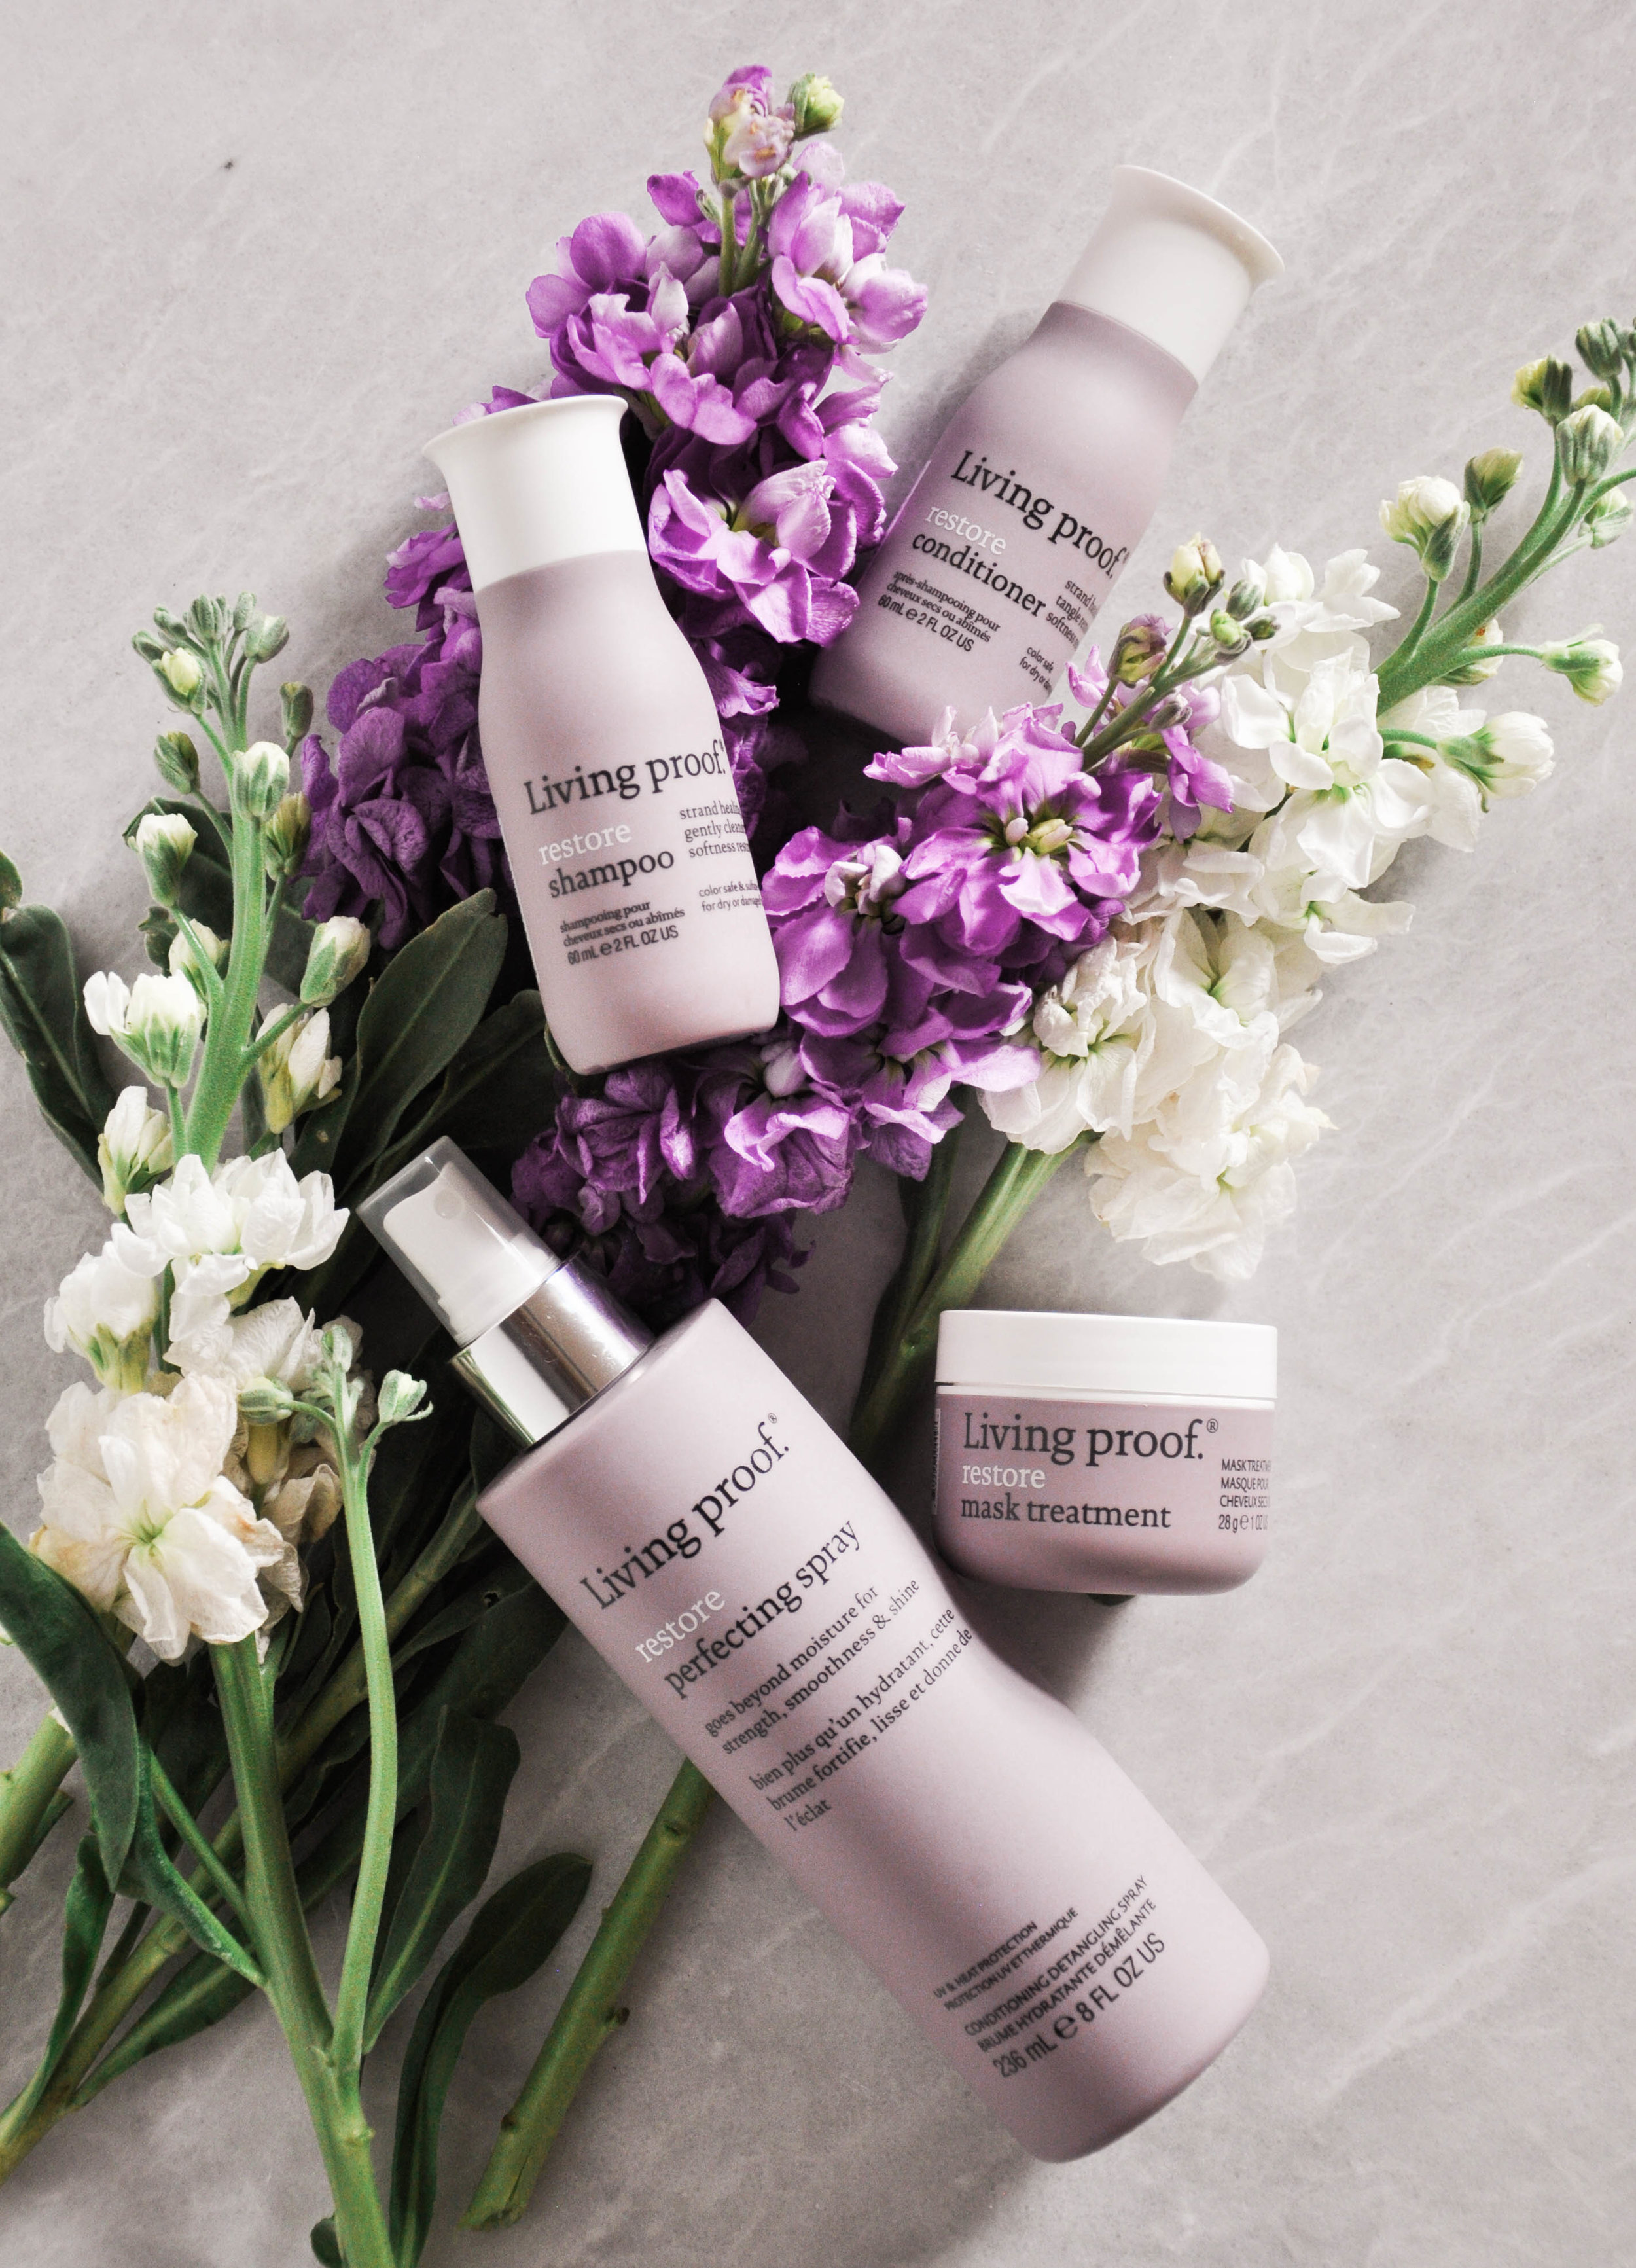 living proof restore hair products on flowers